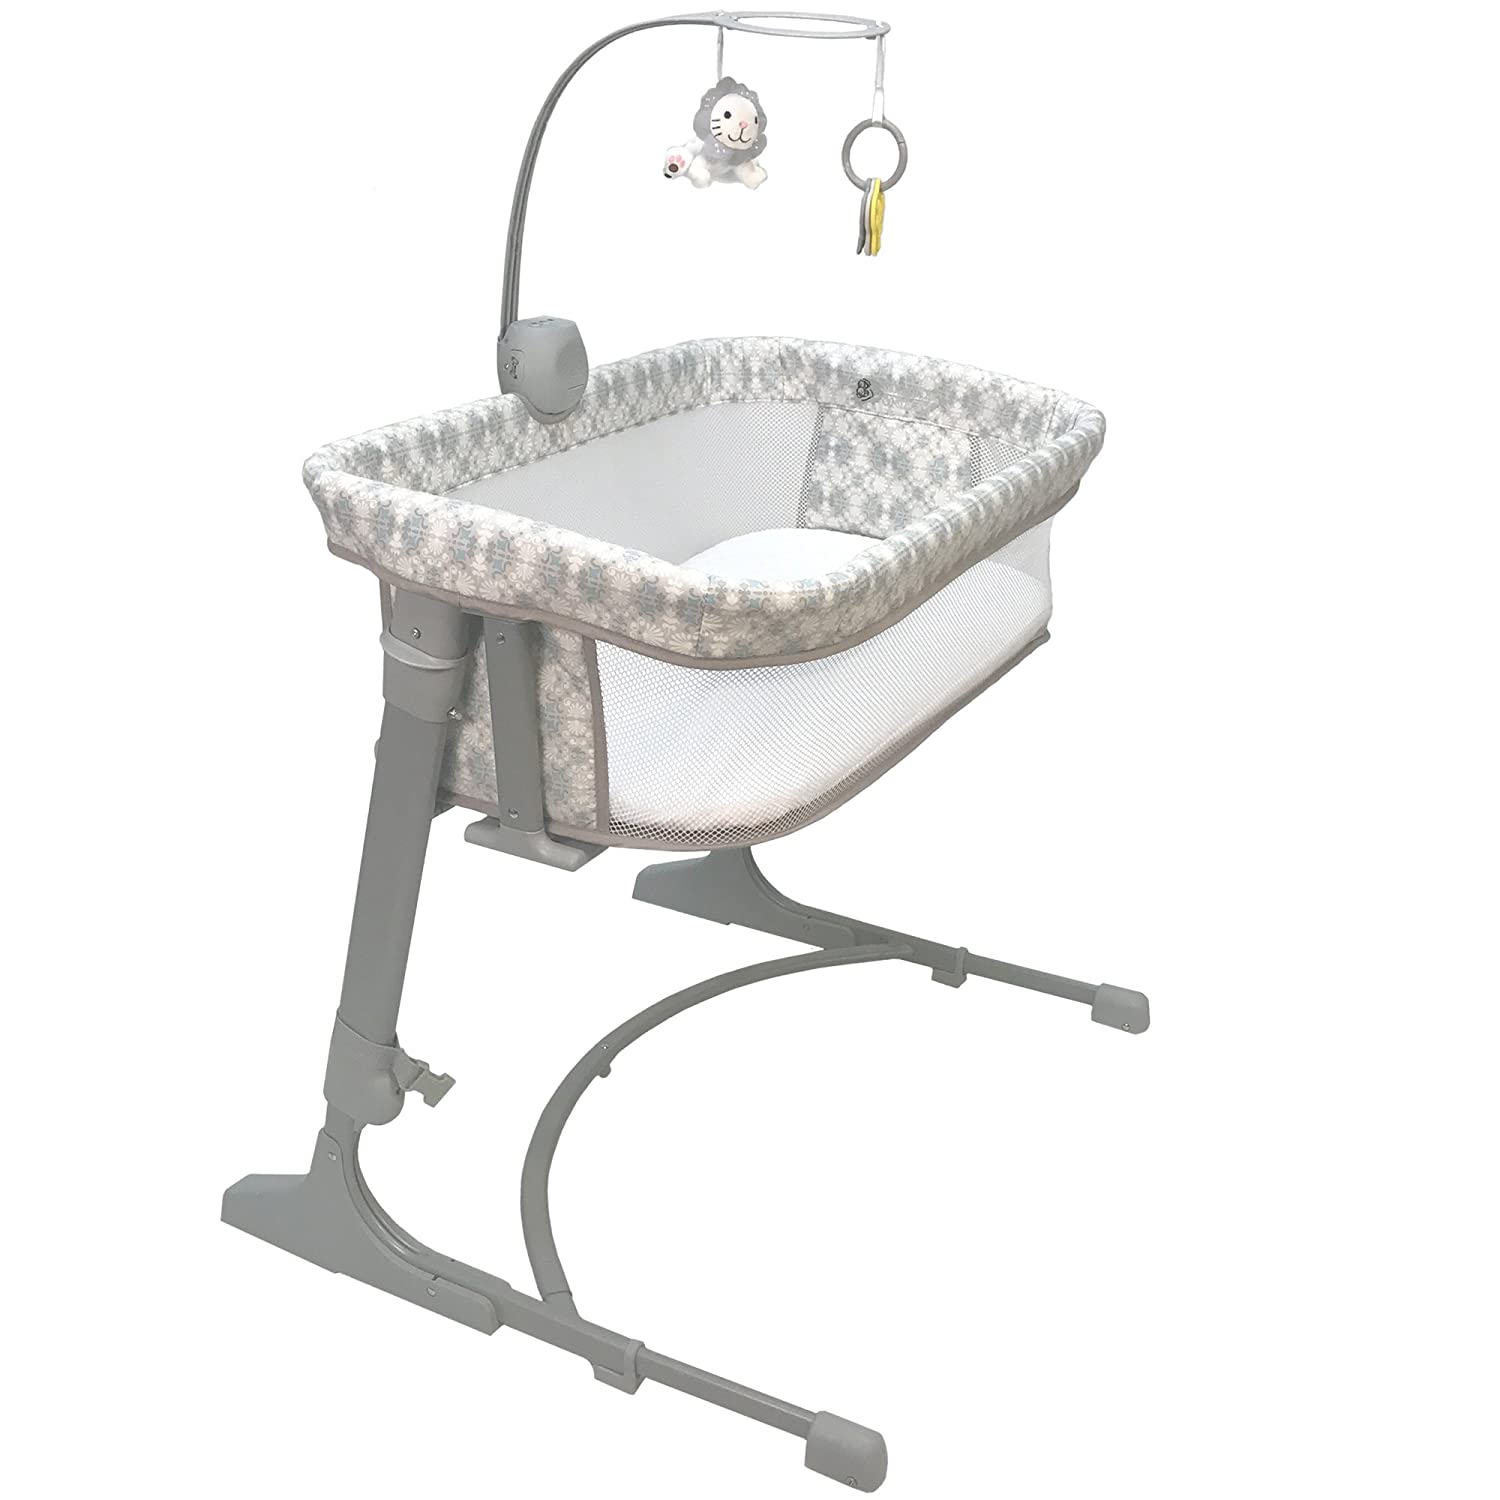 CoSleeper 7100-BL Versatile Bassinet - Bliss White/blue/grey One Size Arm's Reach Concepts Inc.